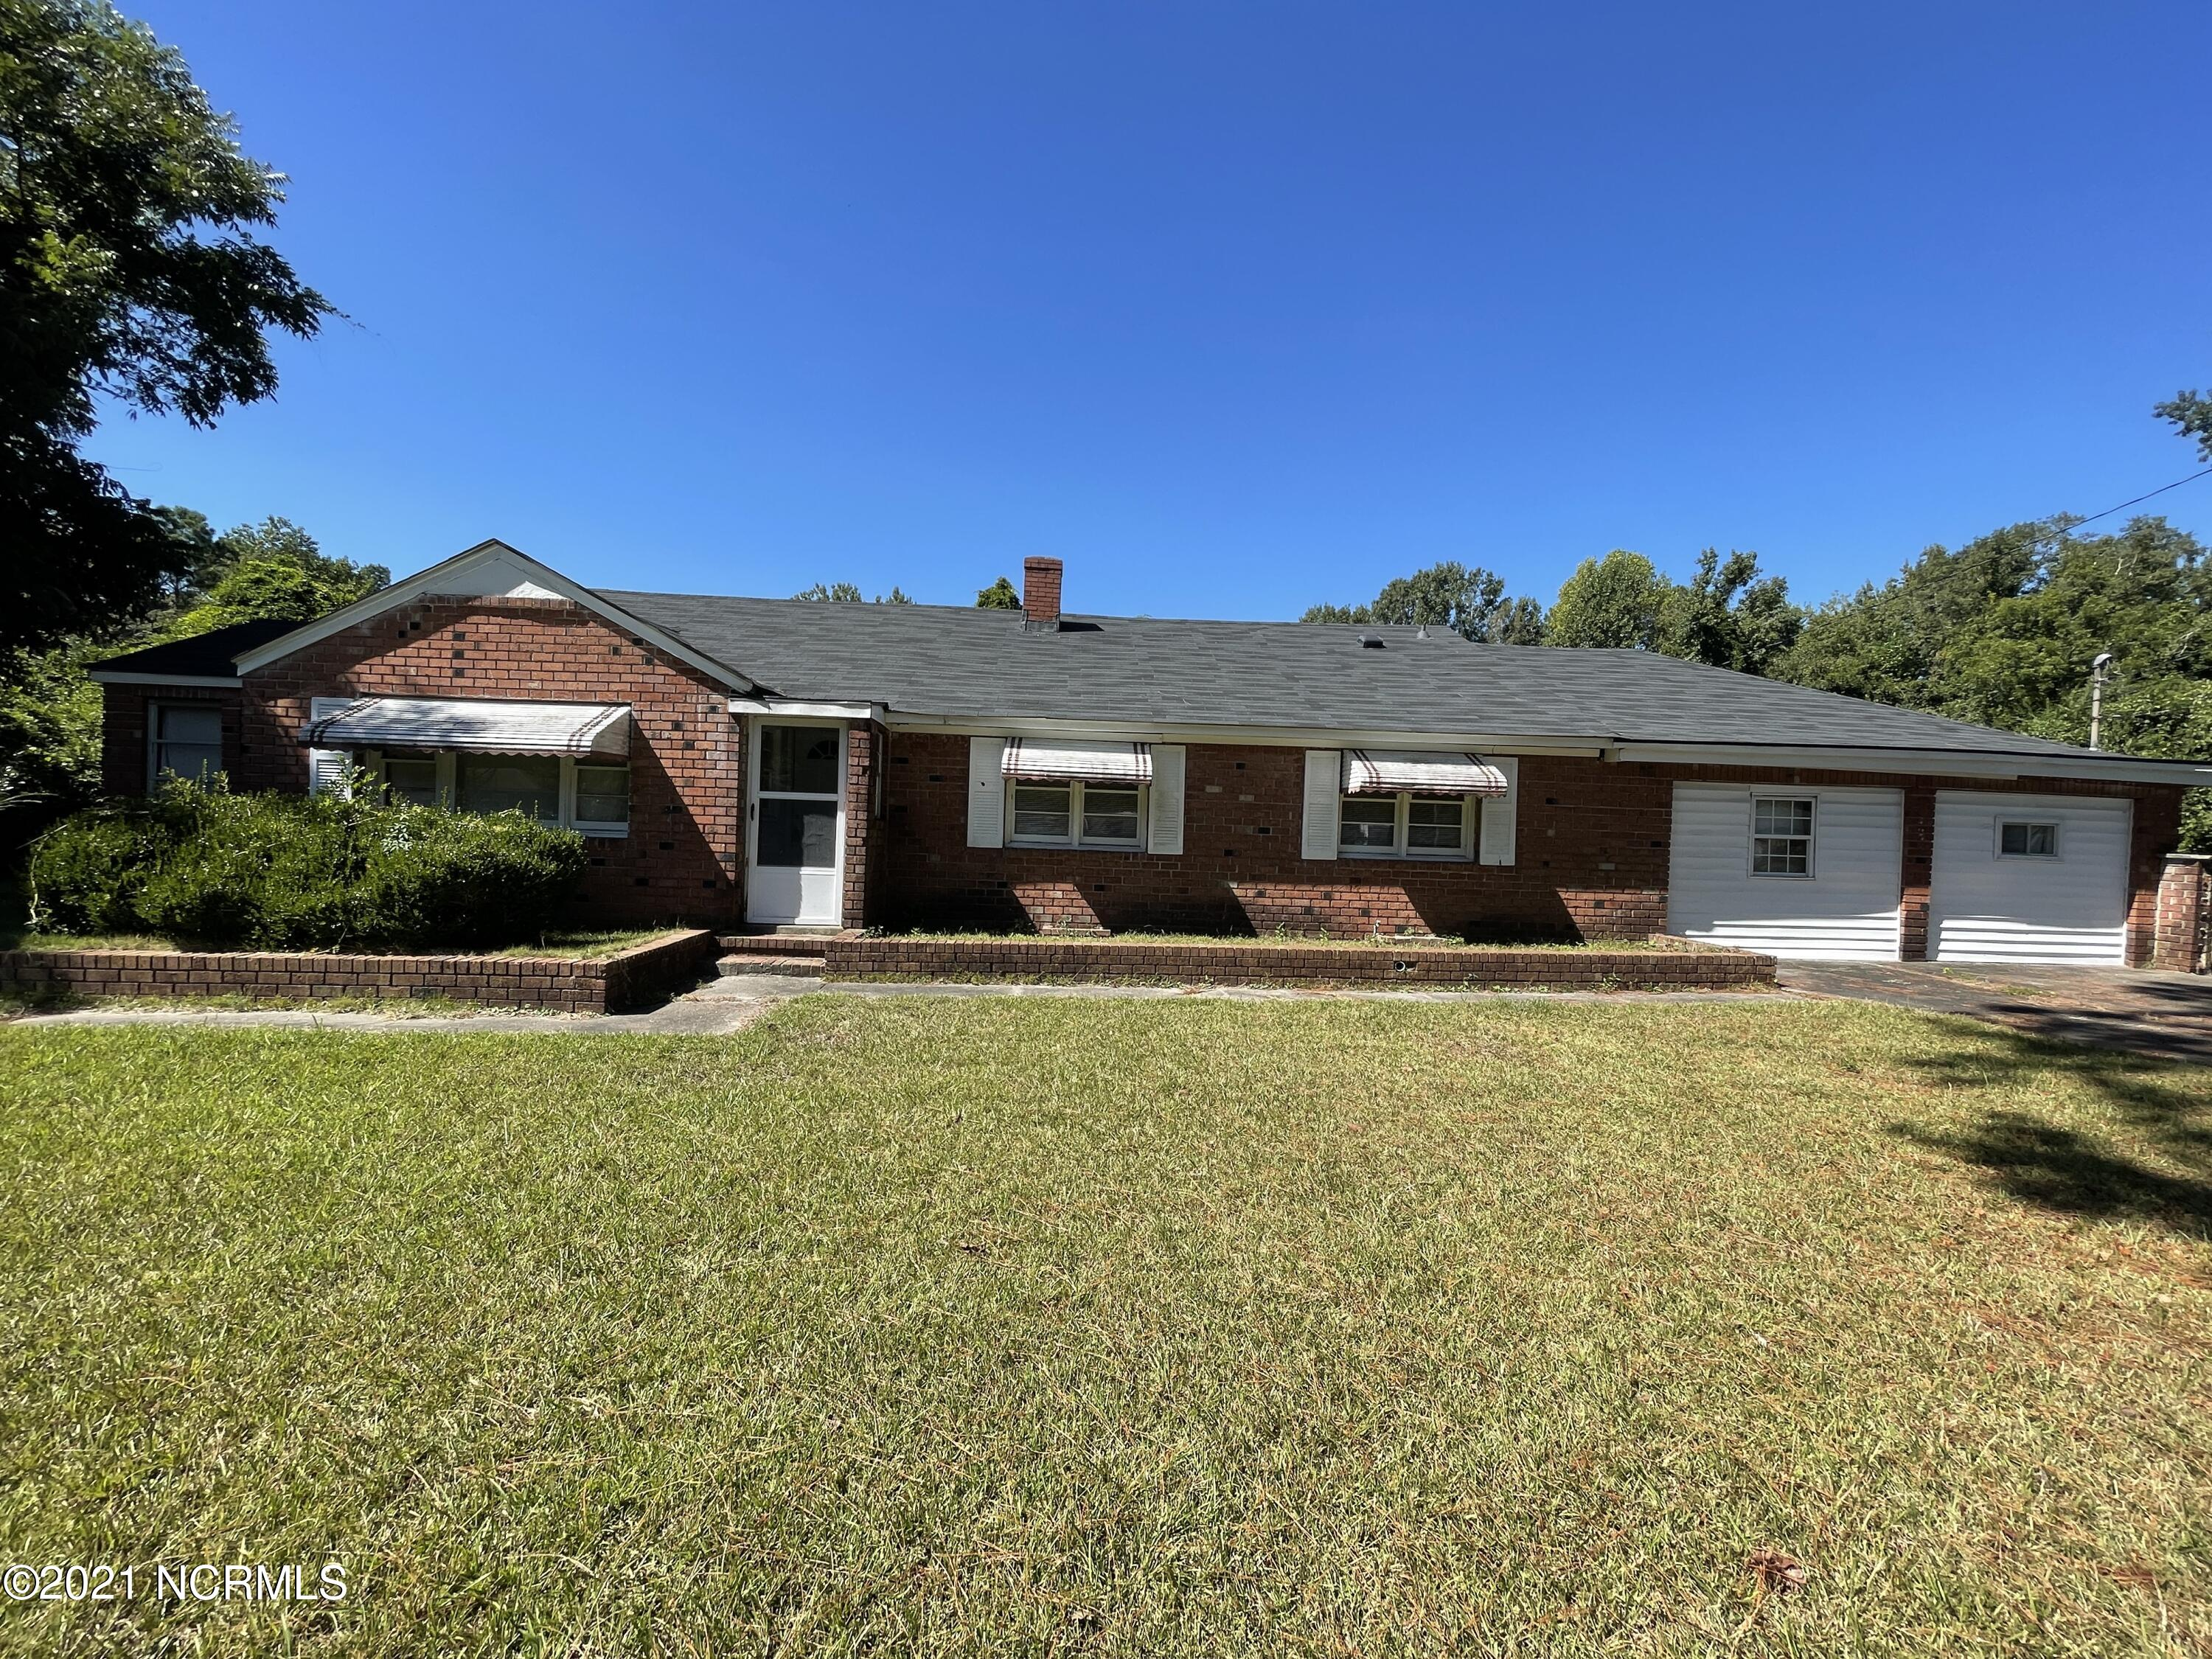 INVESTOR SPECIAL!  If you are looking for a house to work on you have found it.  This 4 bedroom, 1 bath house sits on over 2 acres right in the heart of Jacksonville.  Home is being sold AS IS only and utilities will not be turned on.